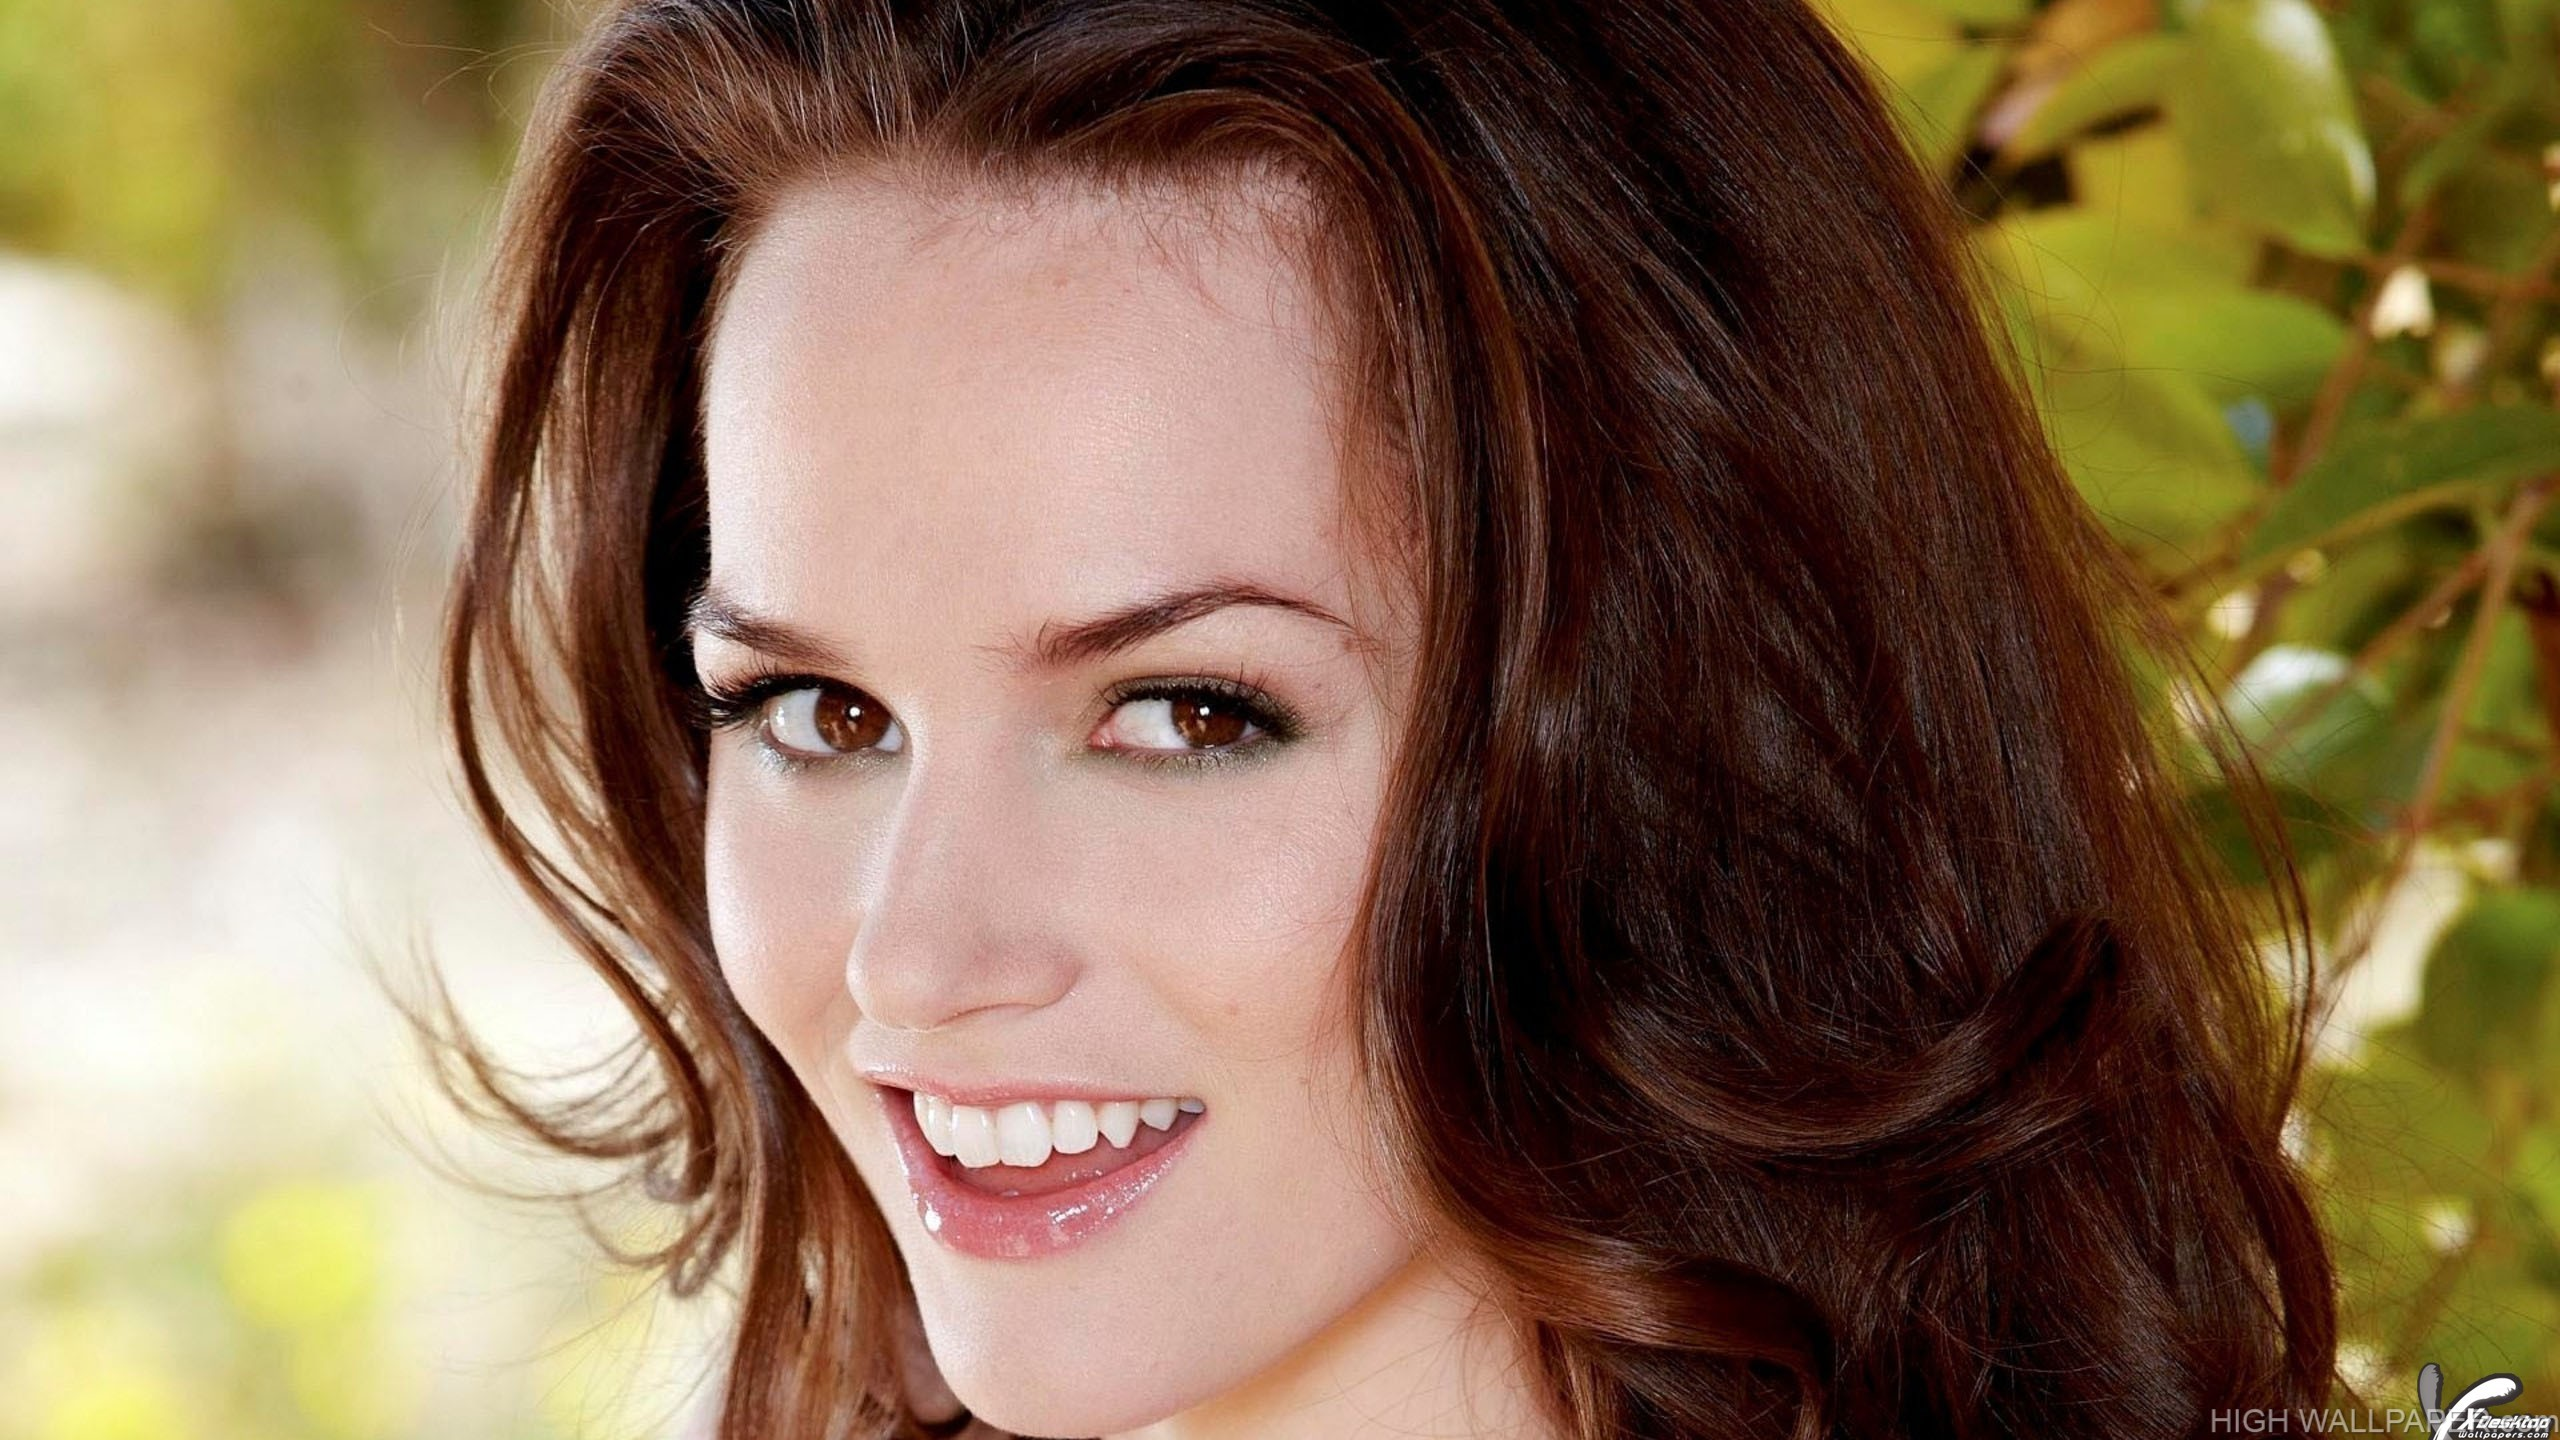 Tori Black Face Closeup Smiling Open Mouth